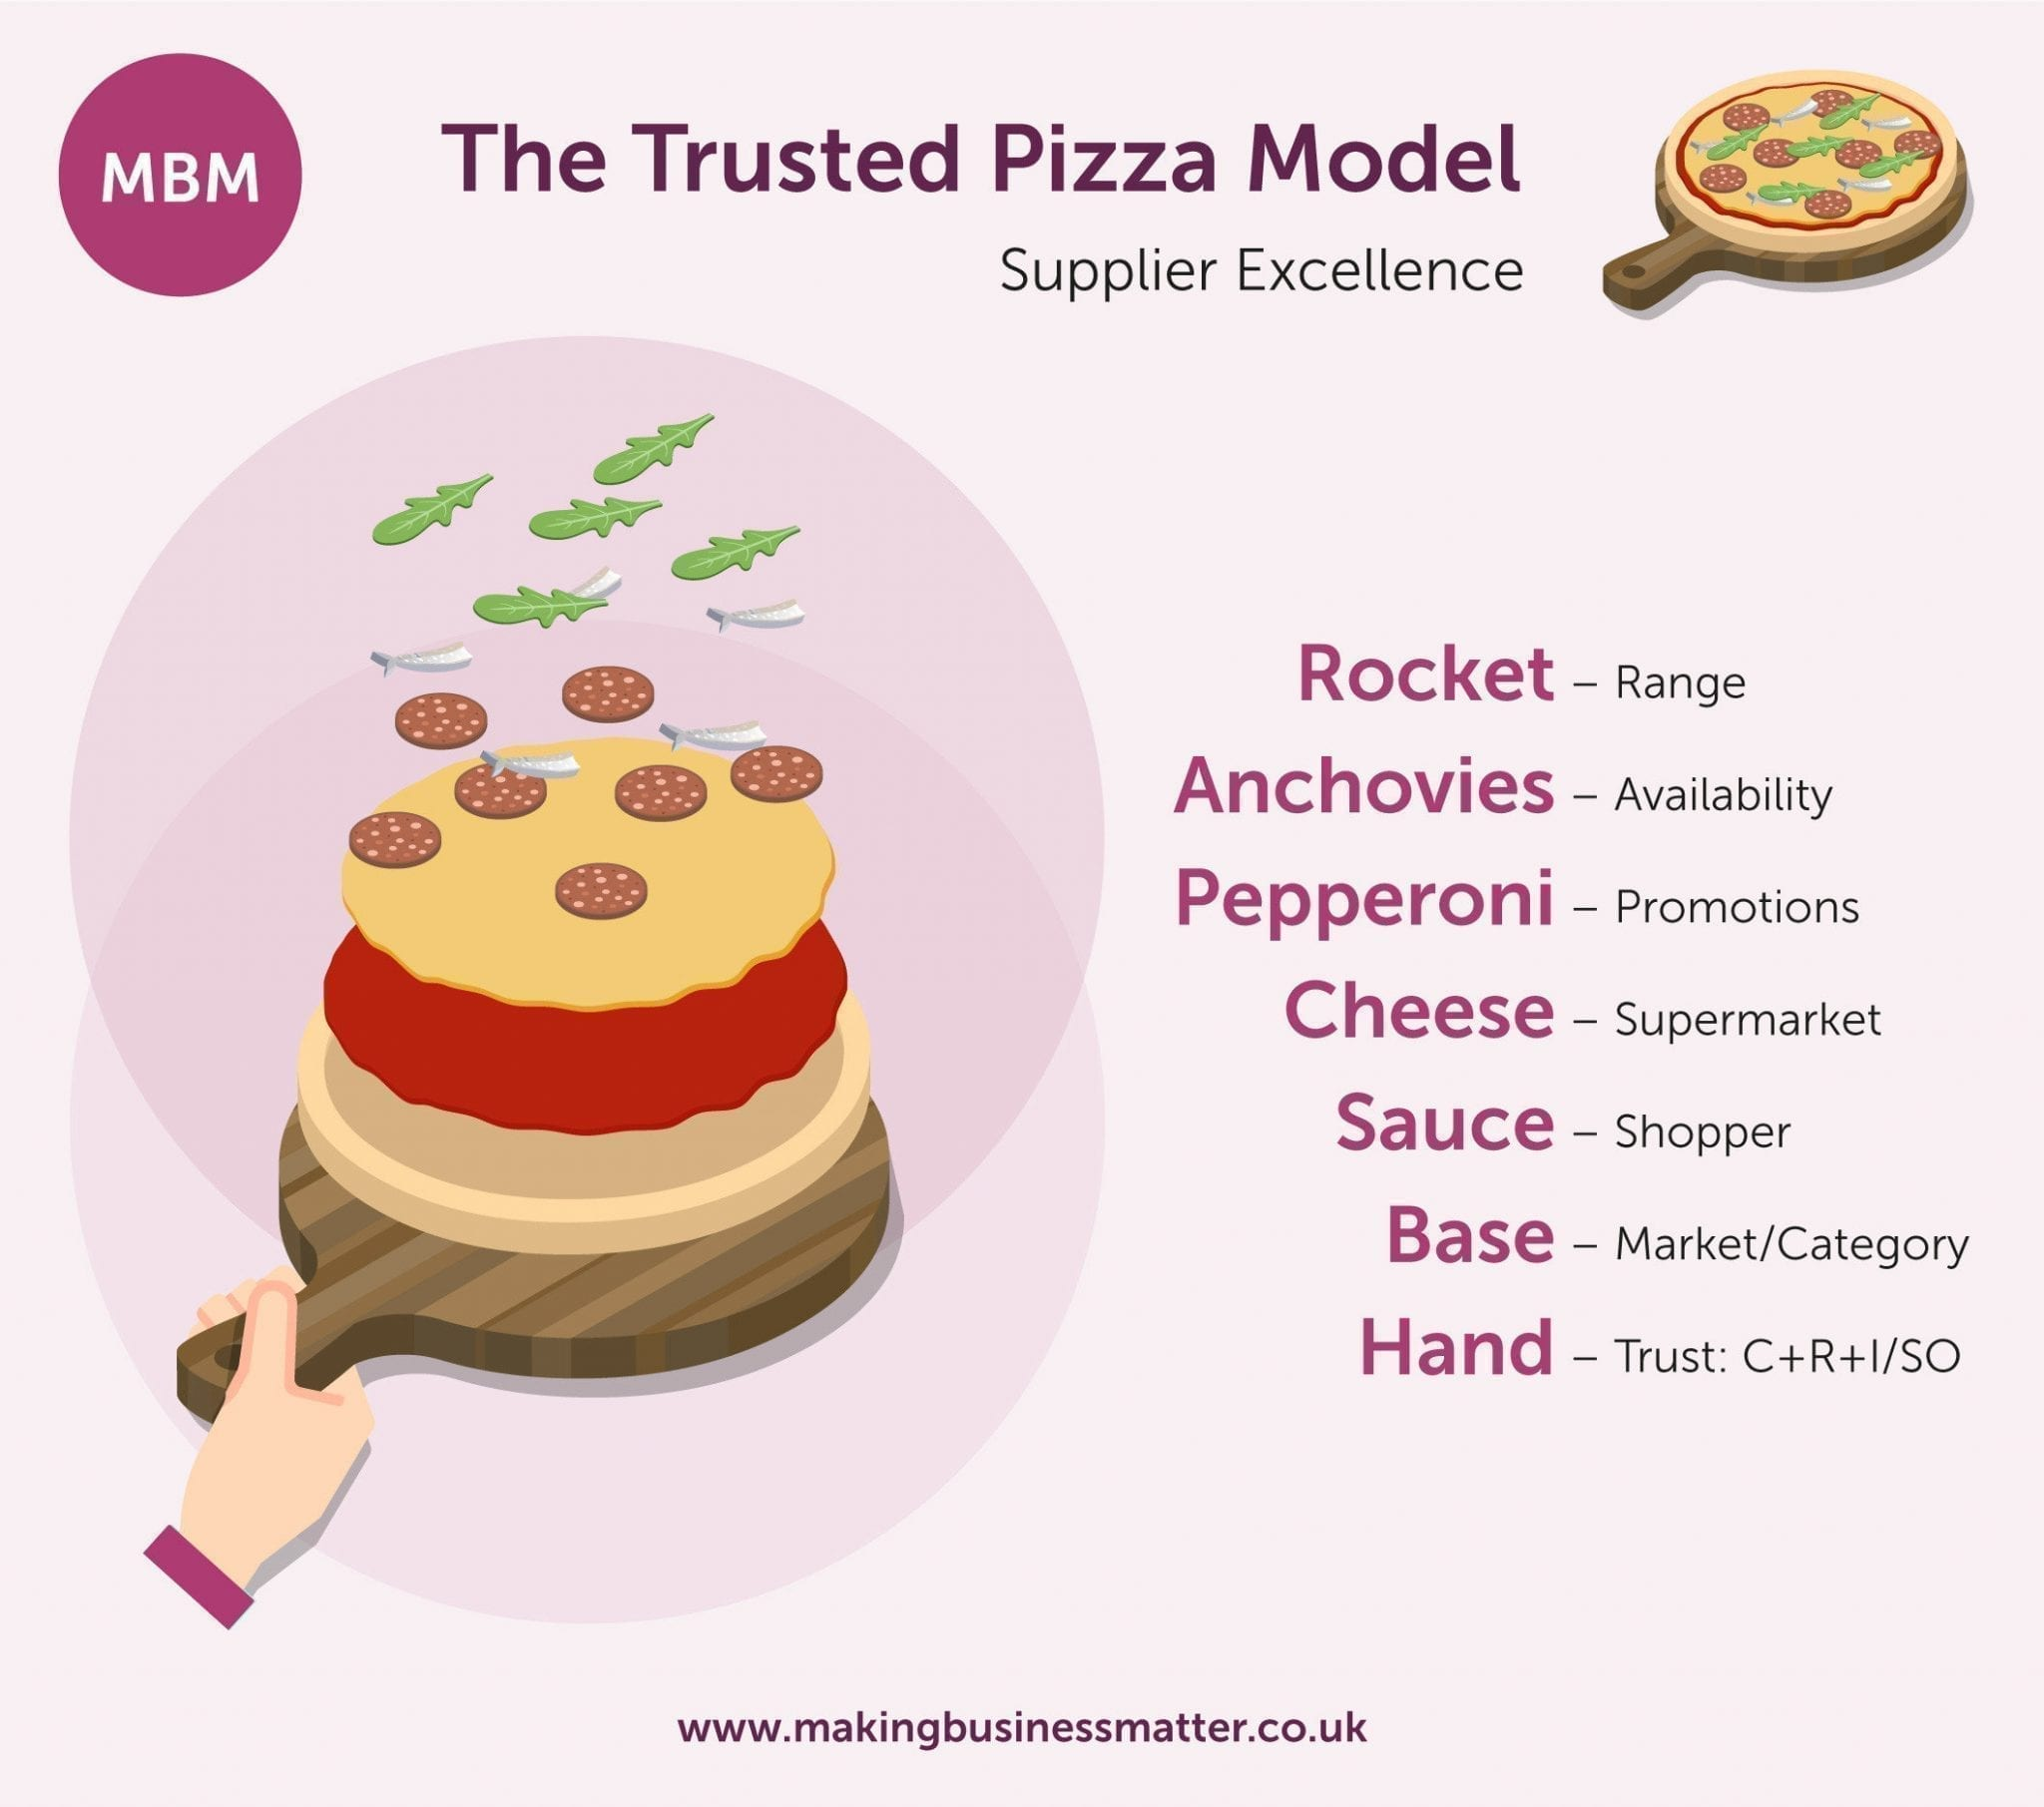 The Trusted Pizza Model Supplier Excellence